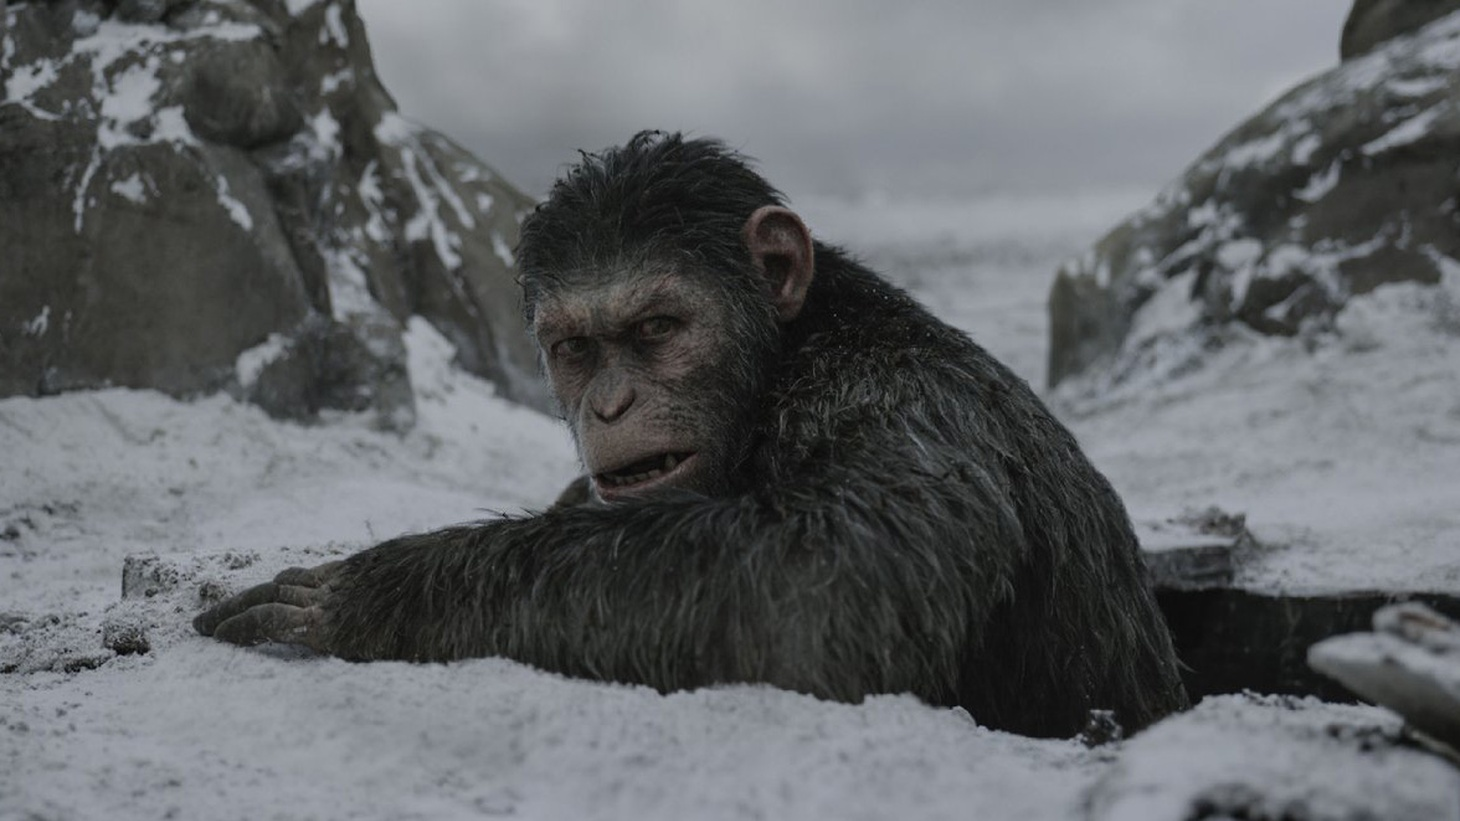 If you listened to War for the Planet of the Apes with your eyes closed, the music alone would let you know you were in the presence of a grand adventure.